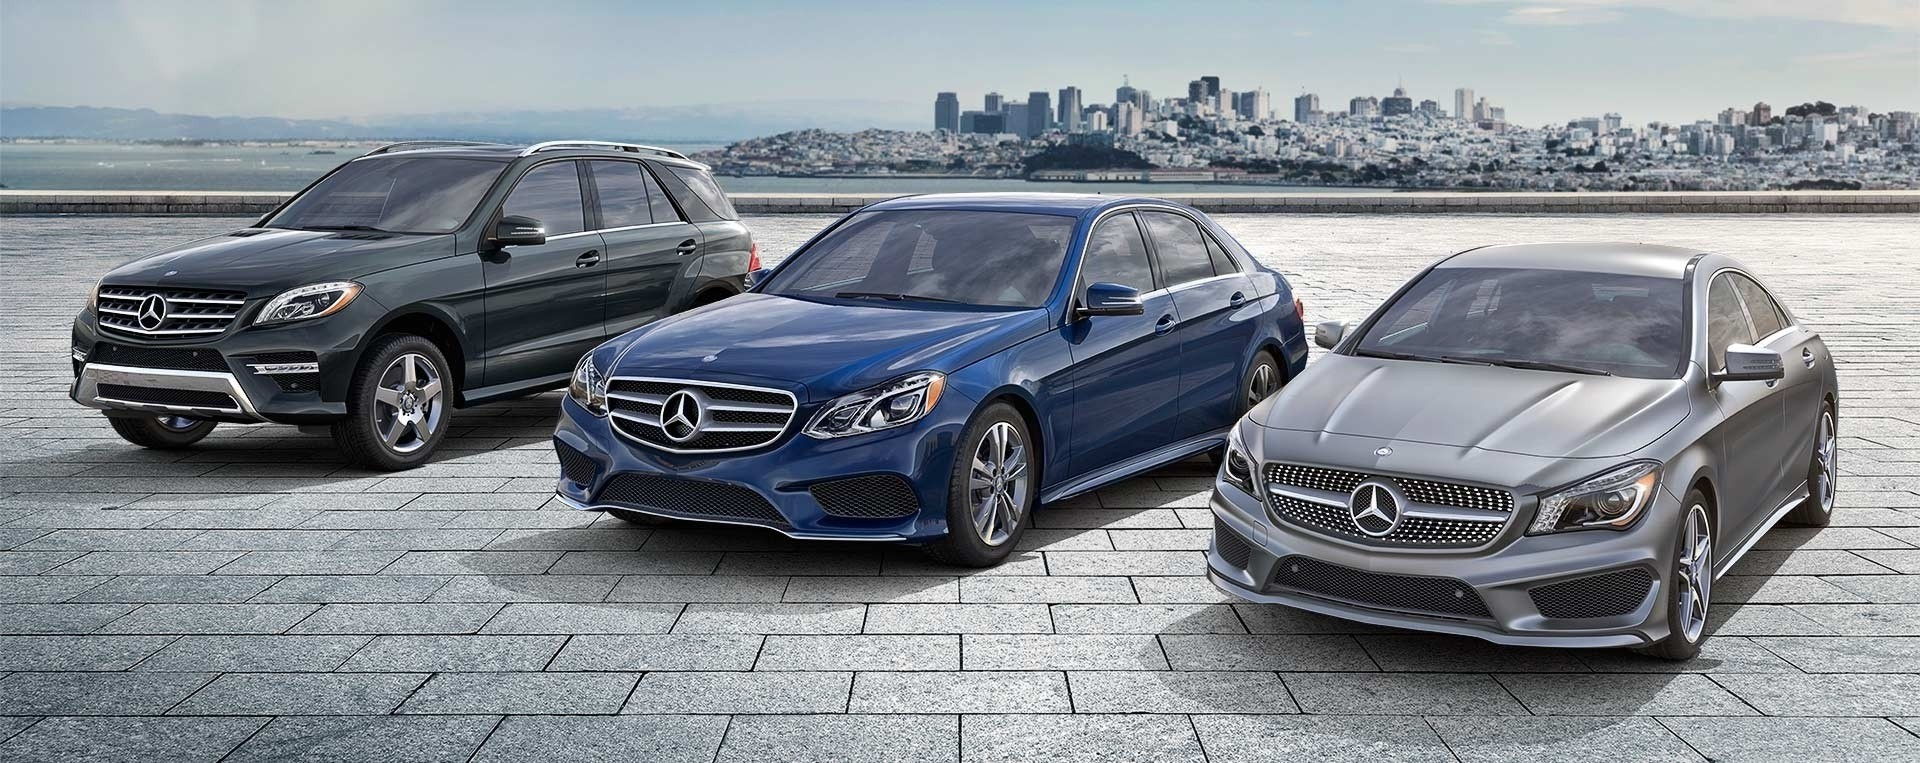 Mercedes-Benz Certified Pre-Owned Vehicles